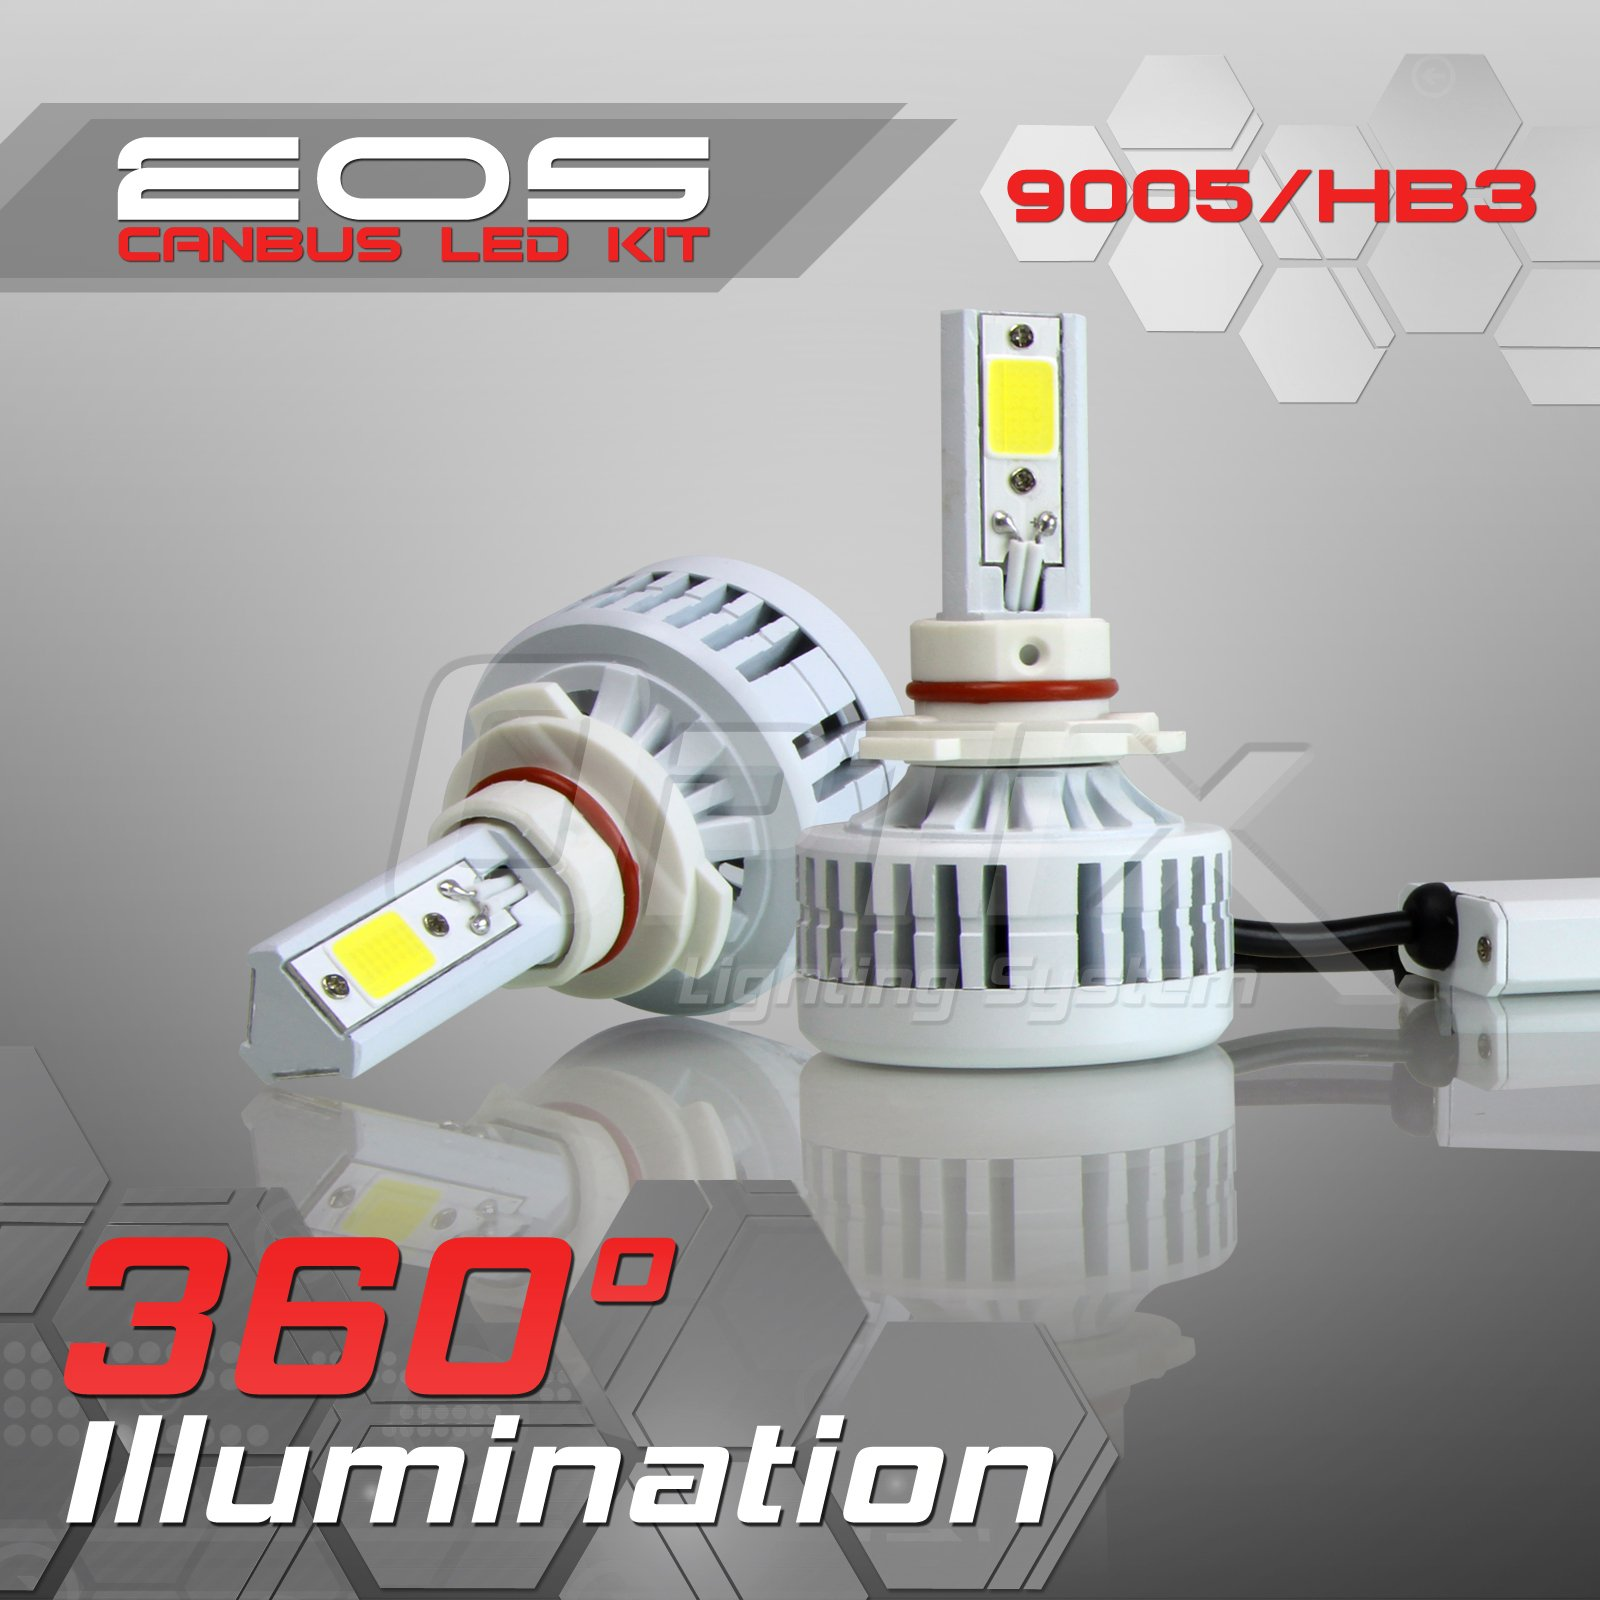 Optix 80W 8000LM LED Headlight Conversion Kit - 9005 HB3 High Beam Bulbs - 6000K 6K Diamond White - Premium Epistar COB Chip - Canbus Chip Error Free No Flicker Plug and Play Design